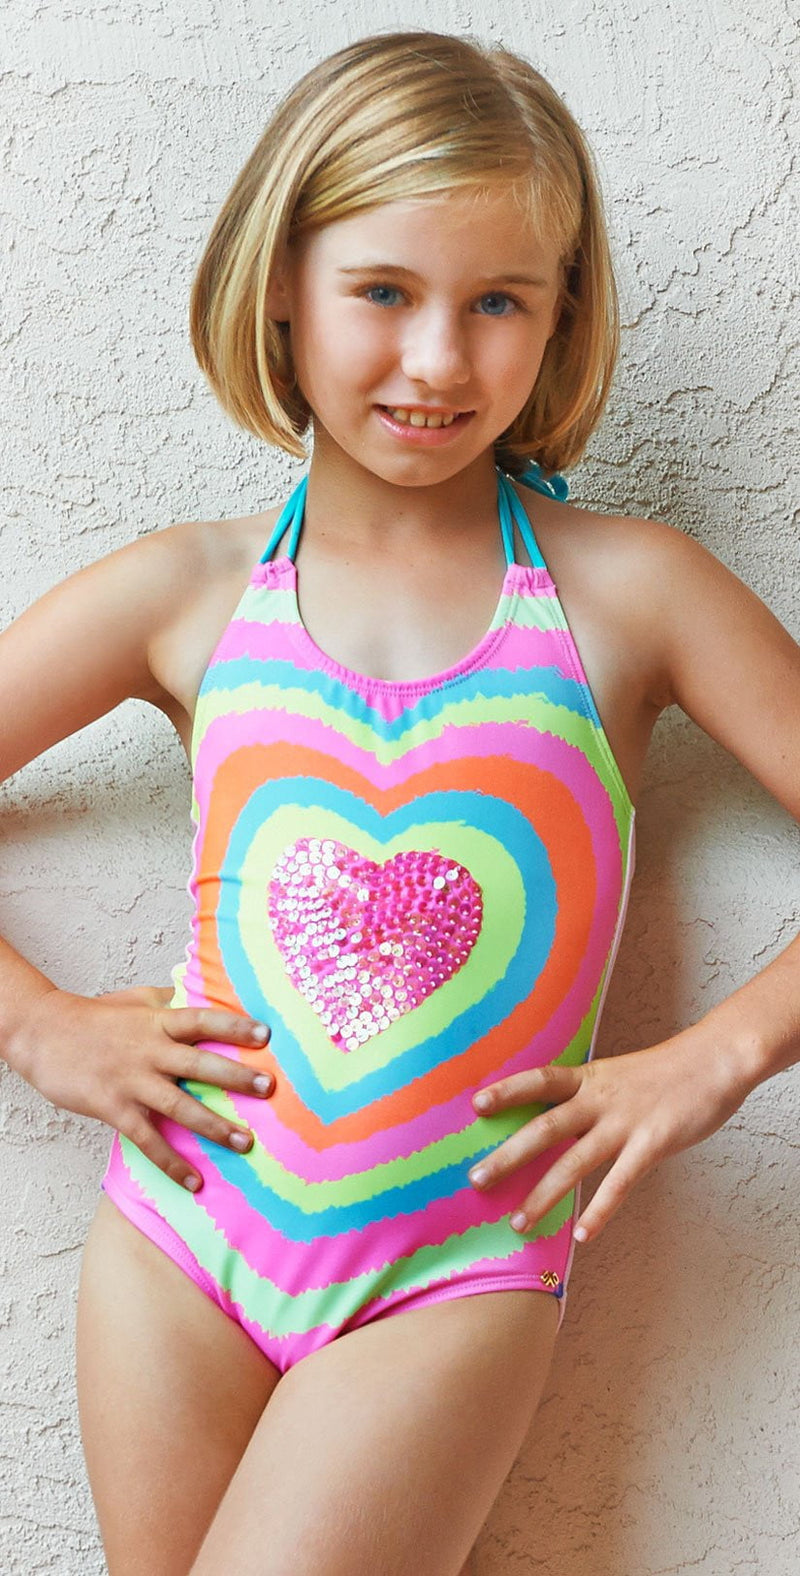 PilyQ Girls Neon Heart embroidered One Piece NEH-606P: